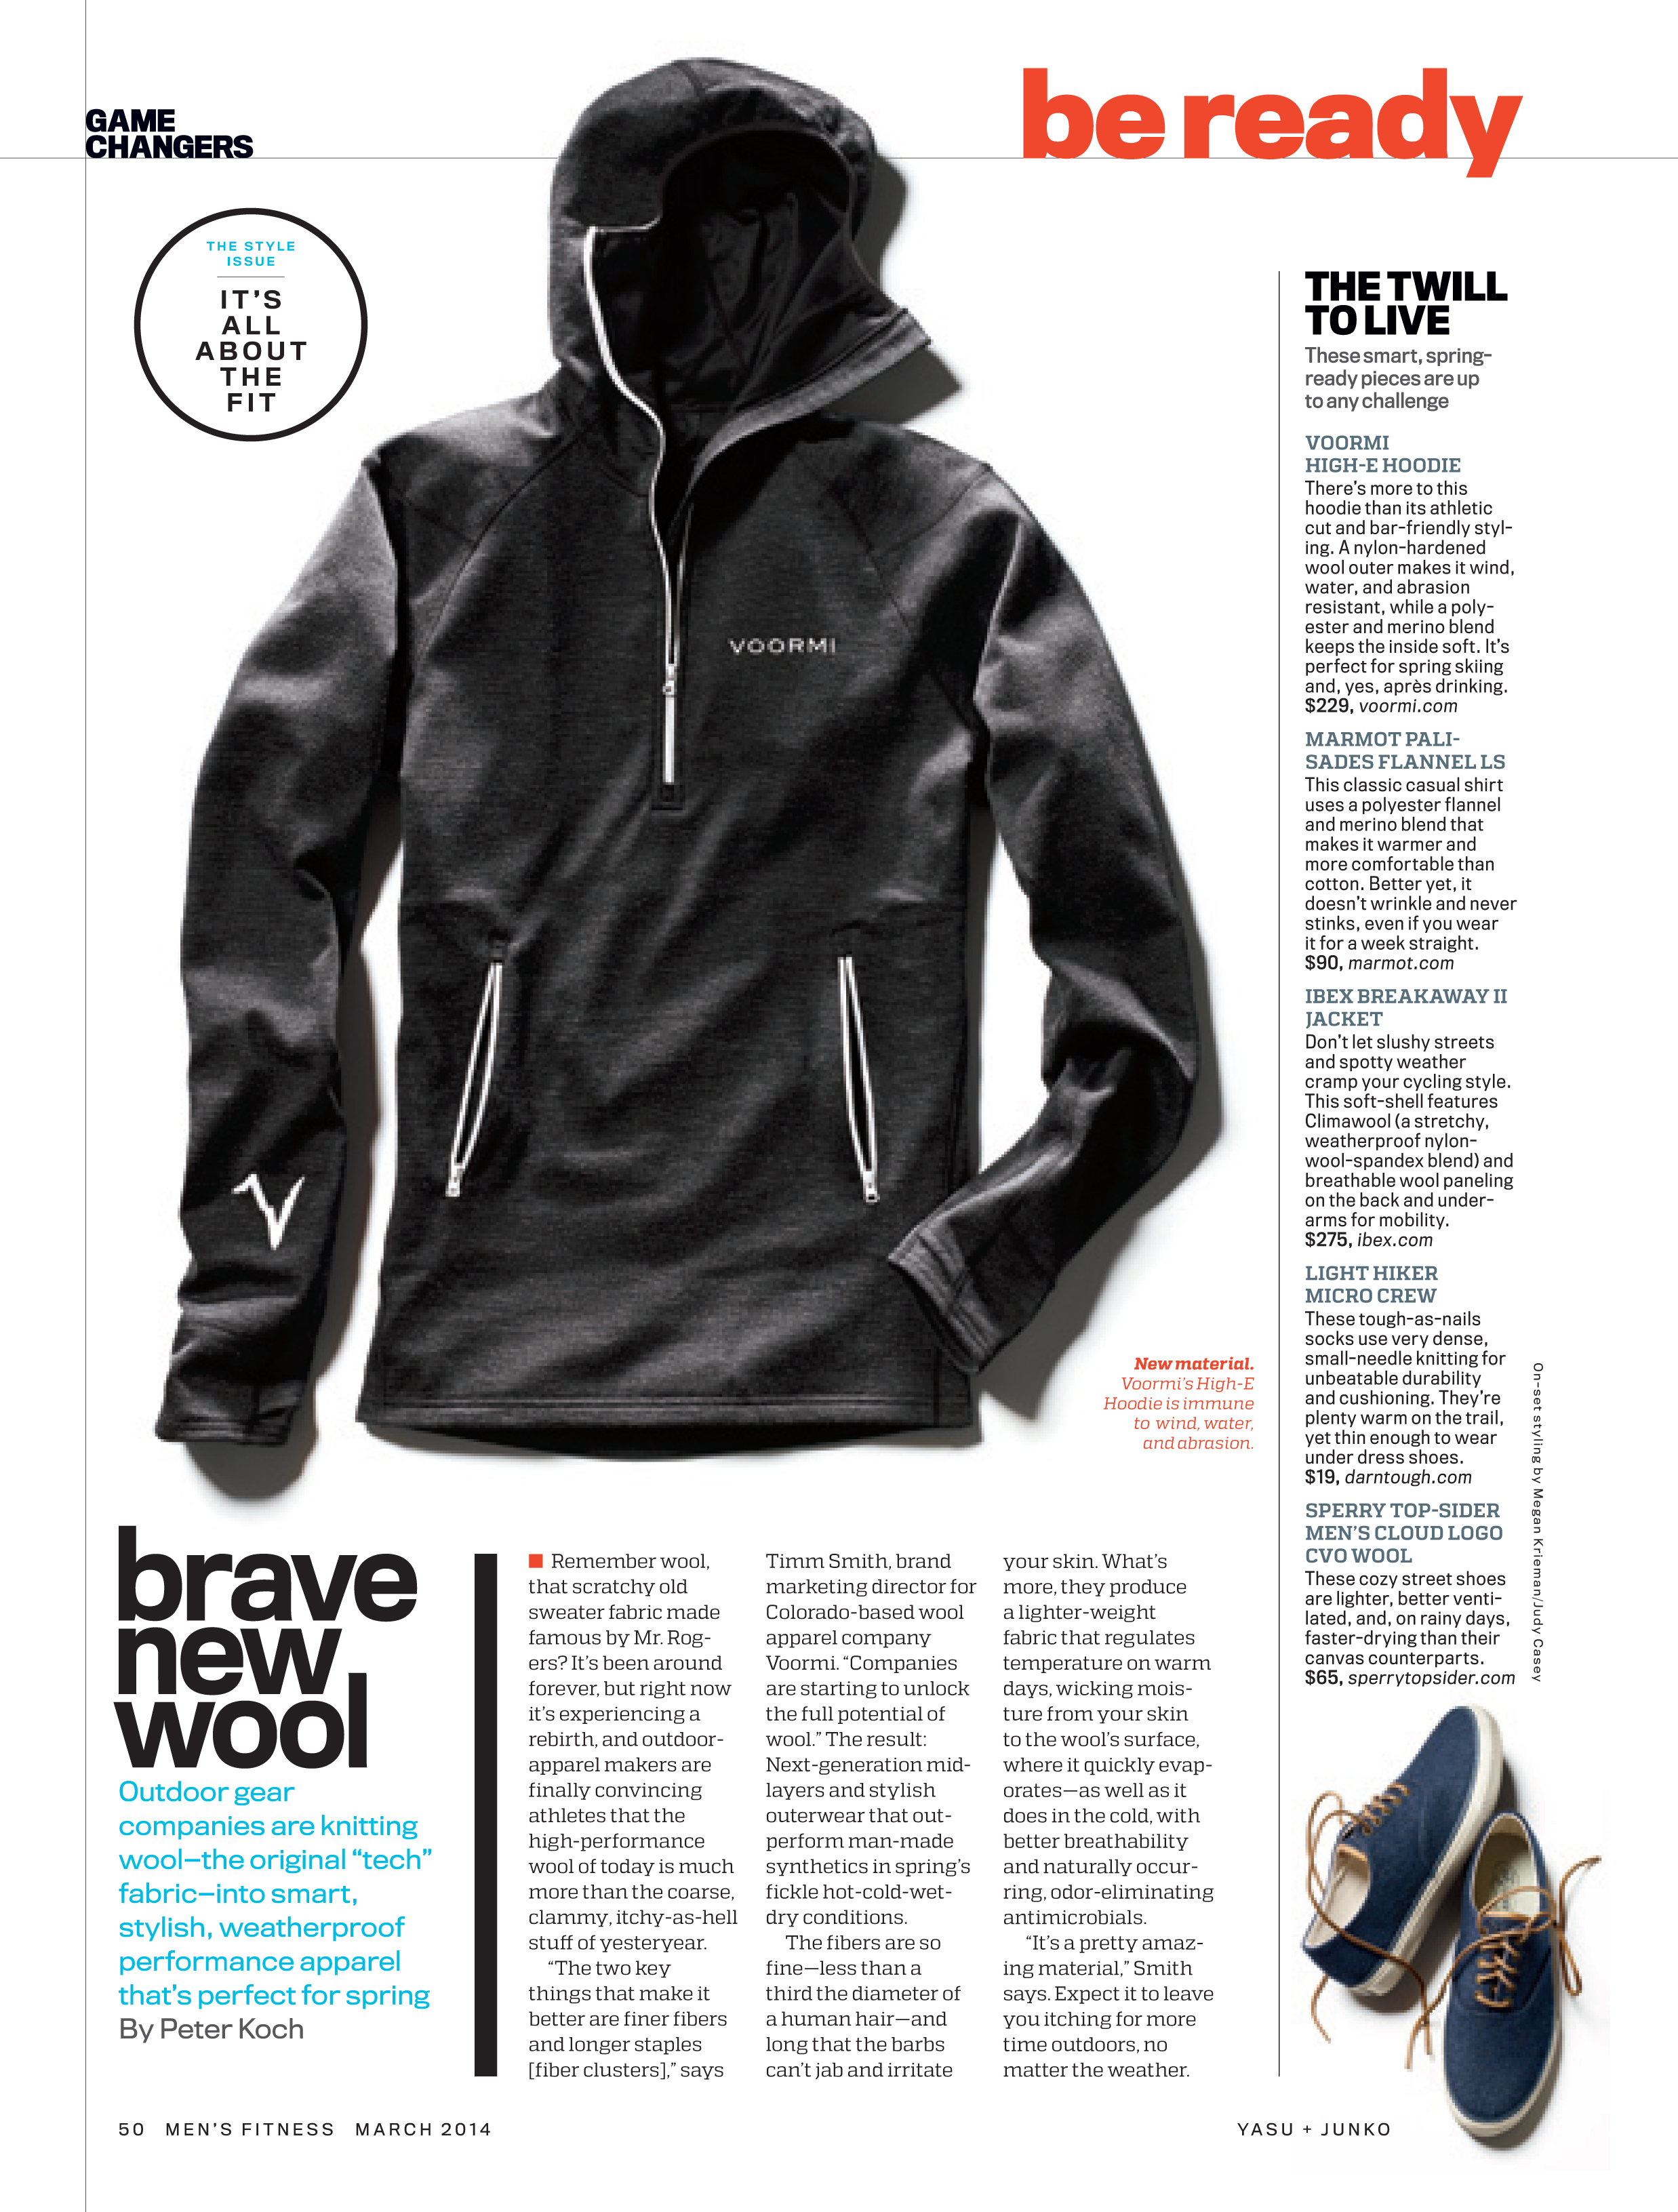 Men's Fitness, March 2014